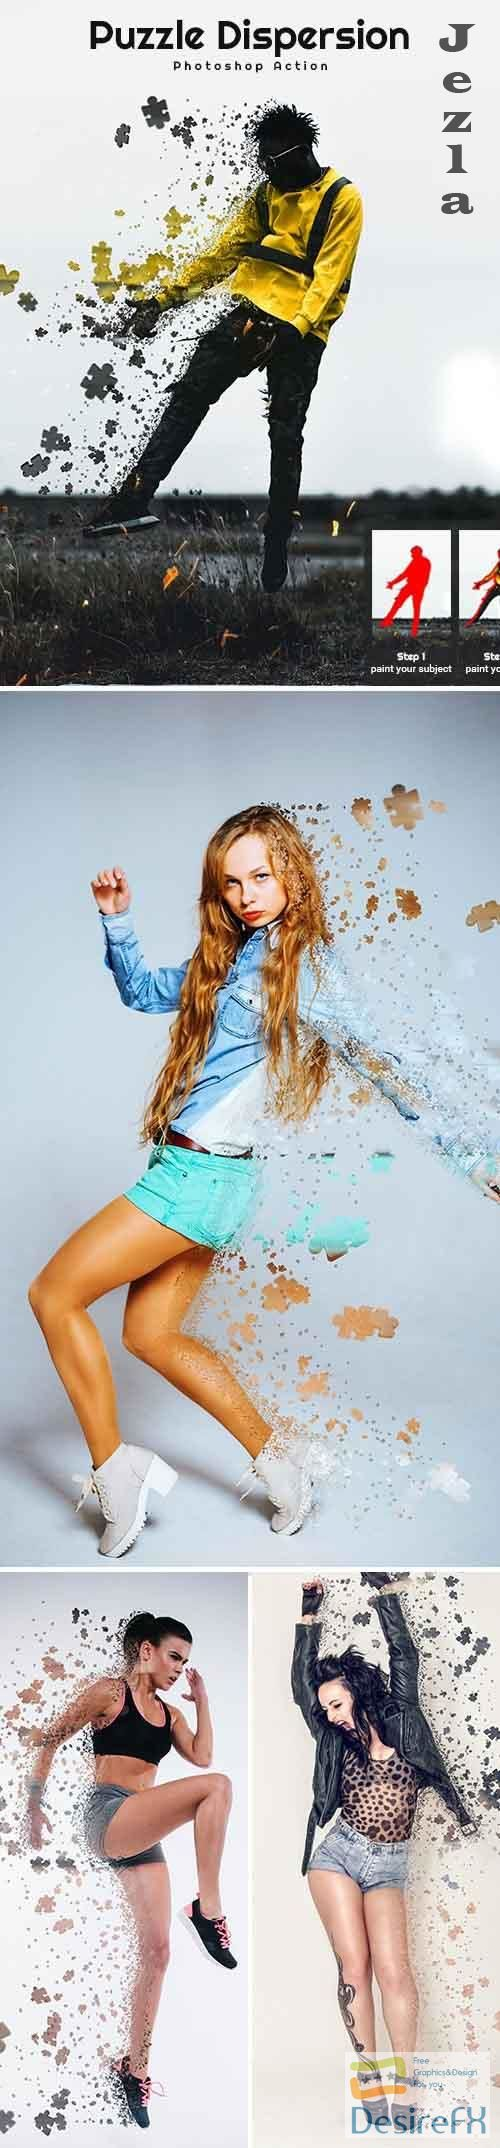 Puzzle Dispersion Photoshop Action 26396228